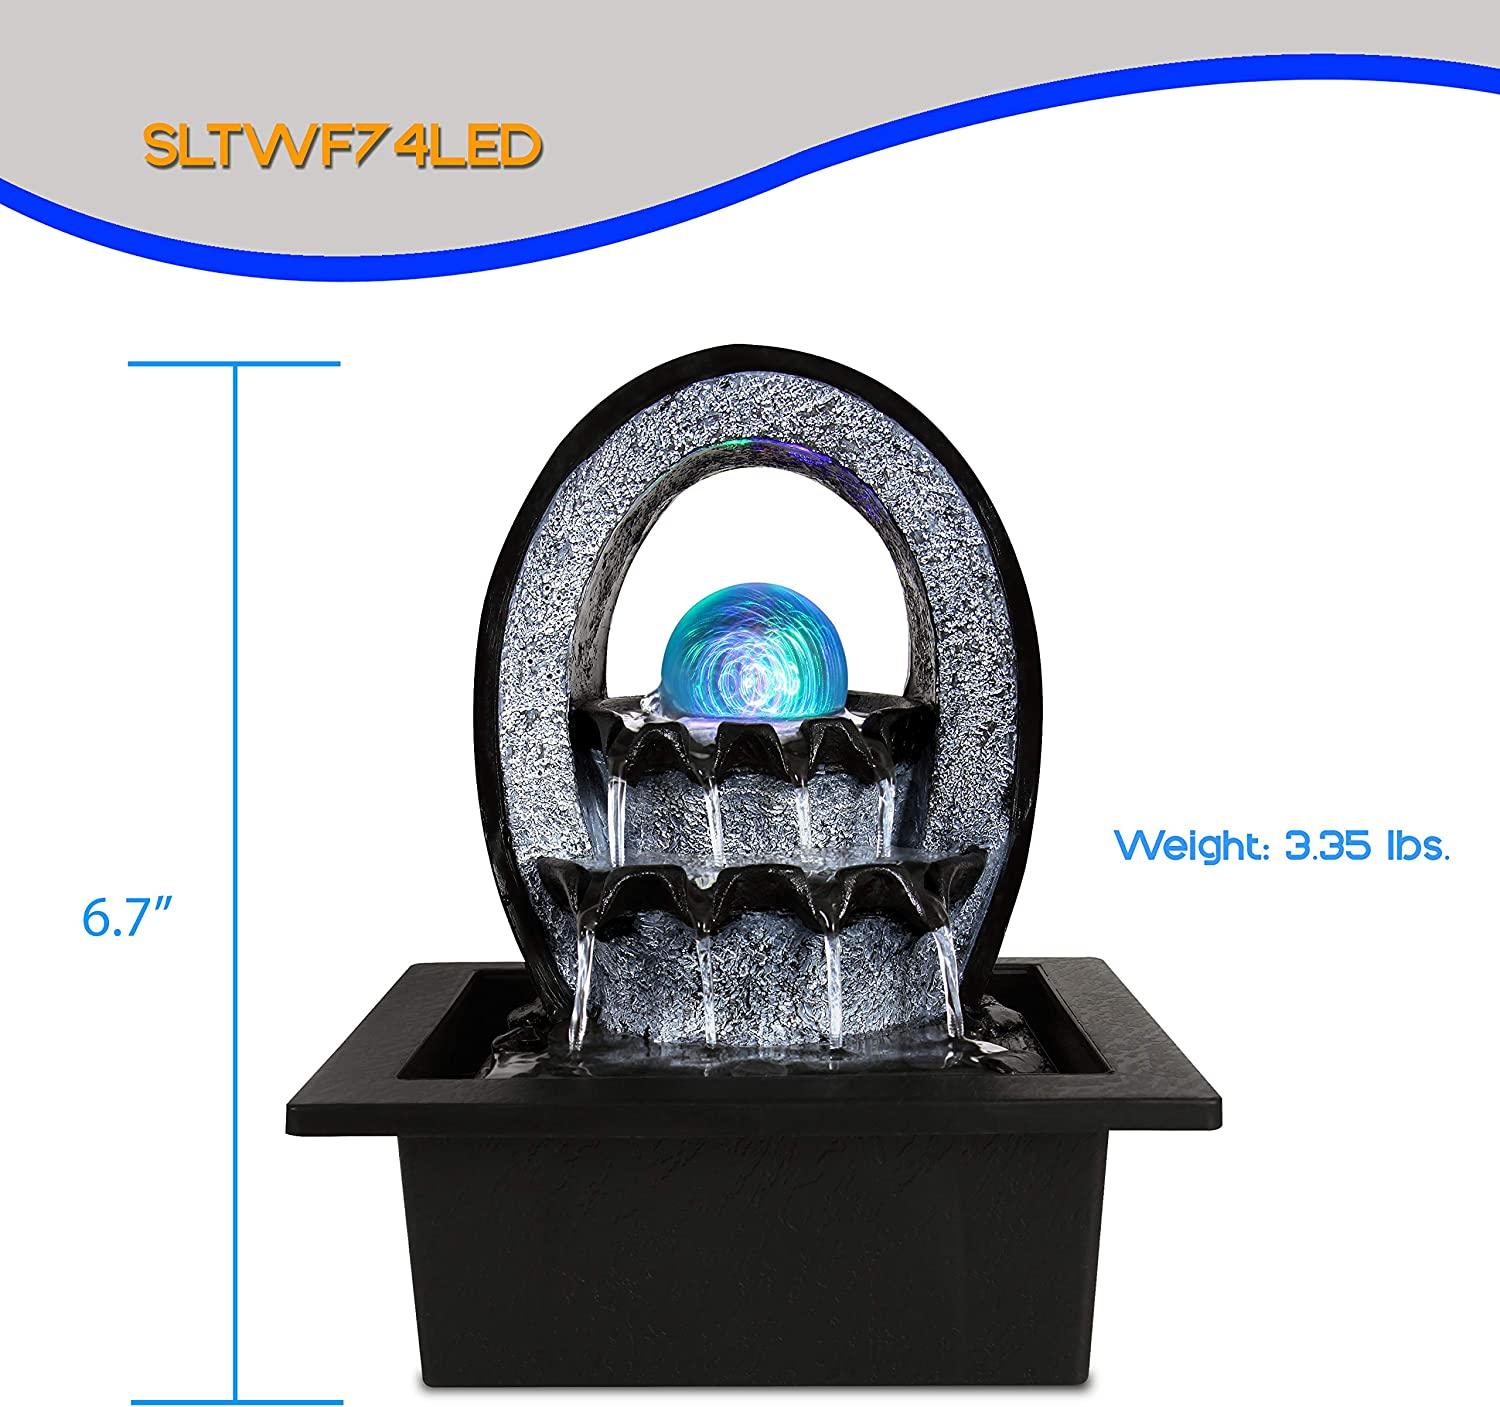 Electric Tabletop Water Fountain Decoration - 2-Tier Indoor Outdoor Portable Desktop Decorative Waterfall Kit w/LED Illuminated Crystal Ball Accent, Include Submersible Pump, 12V Adapter - SereneLife